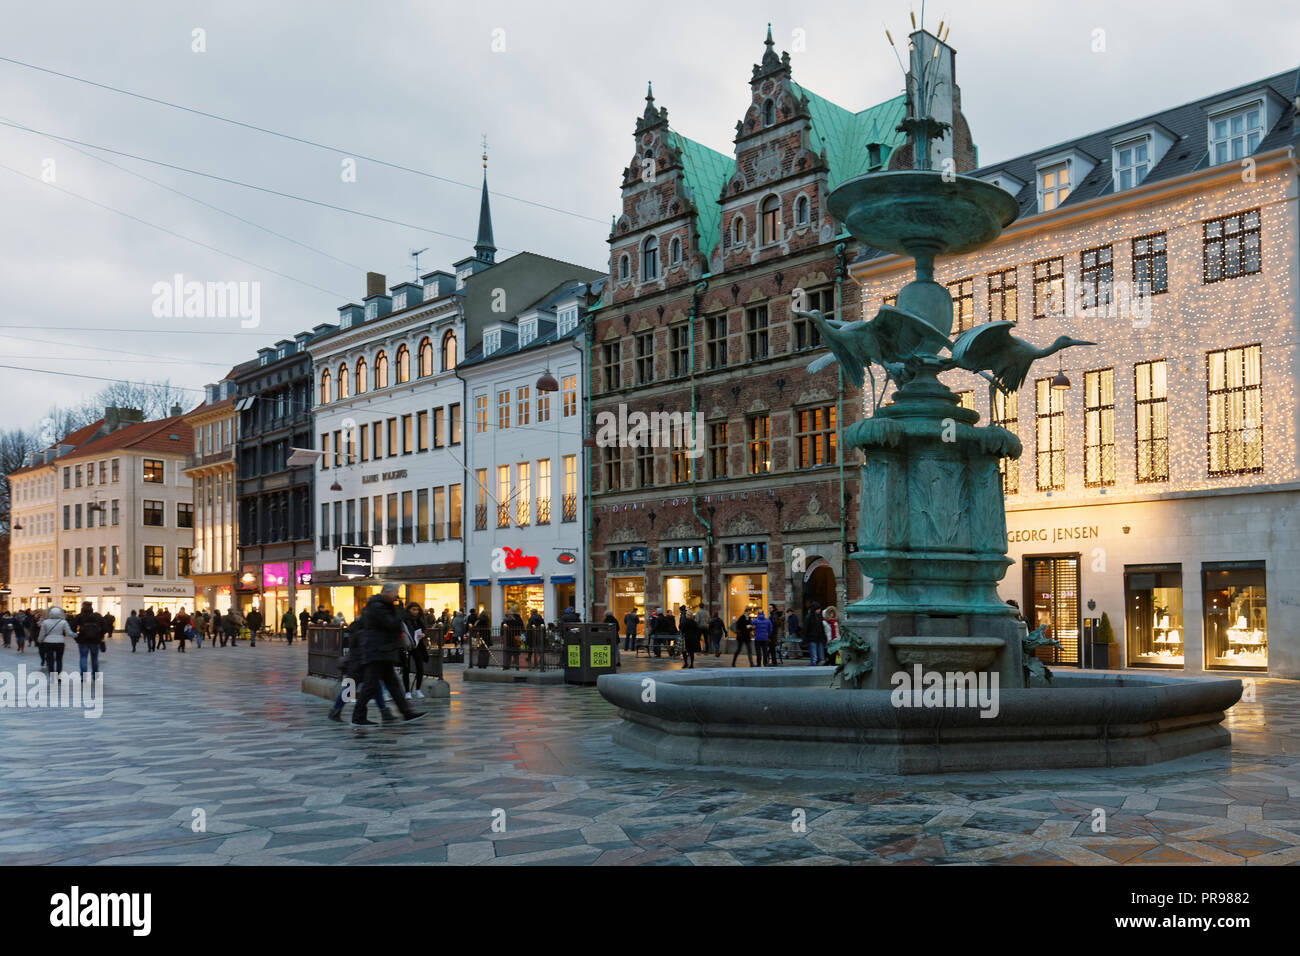 Copenhagen, Denmark - November 6, 2016: People walking at the Stork Fountain on Amagertorv square. The fountain erected in 1894 by design of  Edvard P - Stock Image